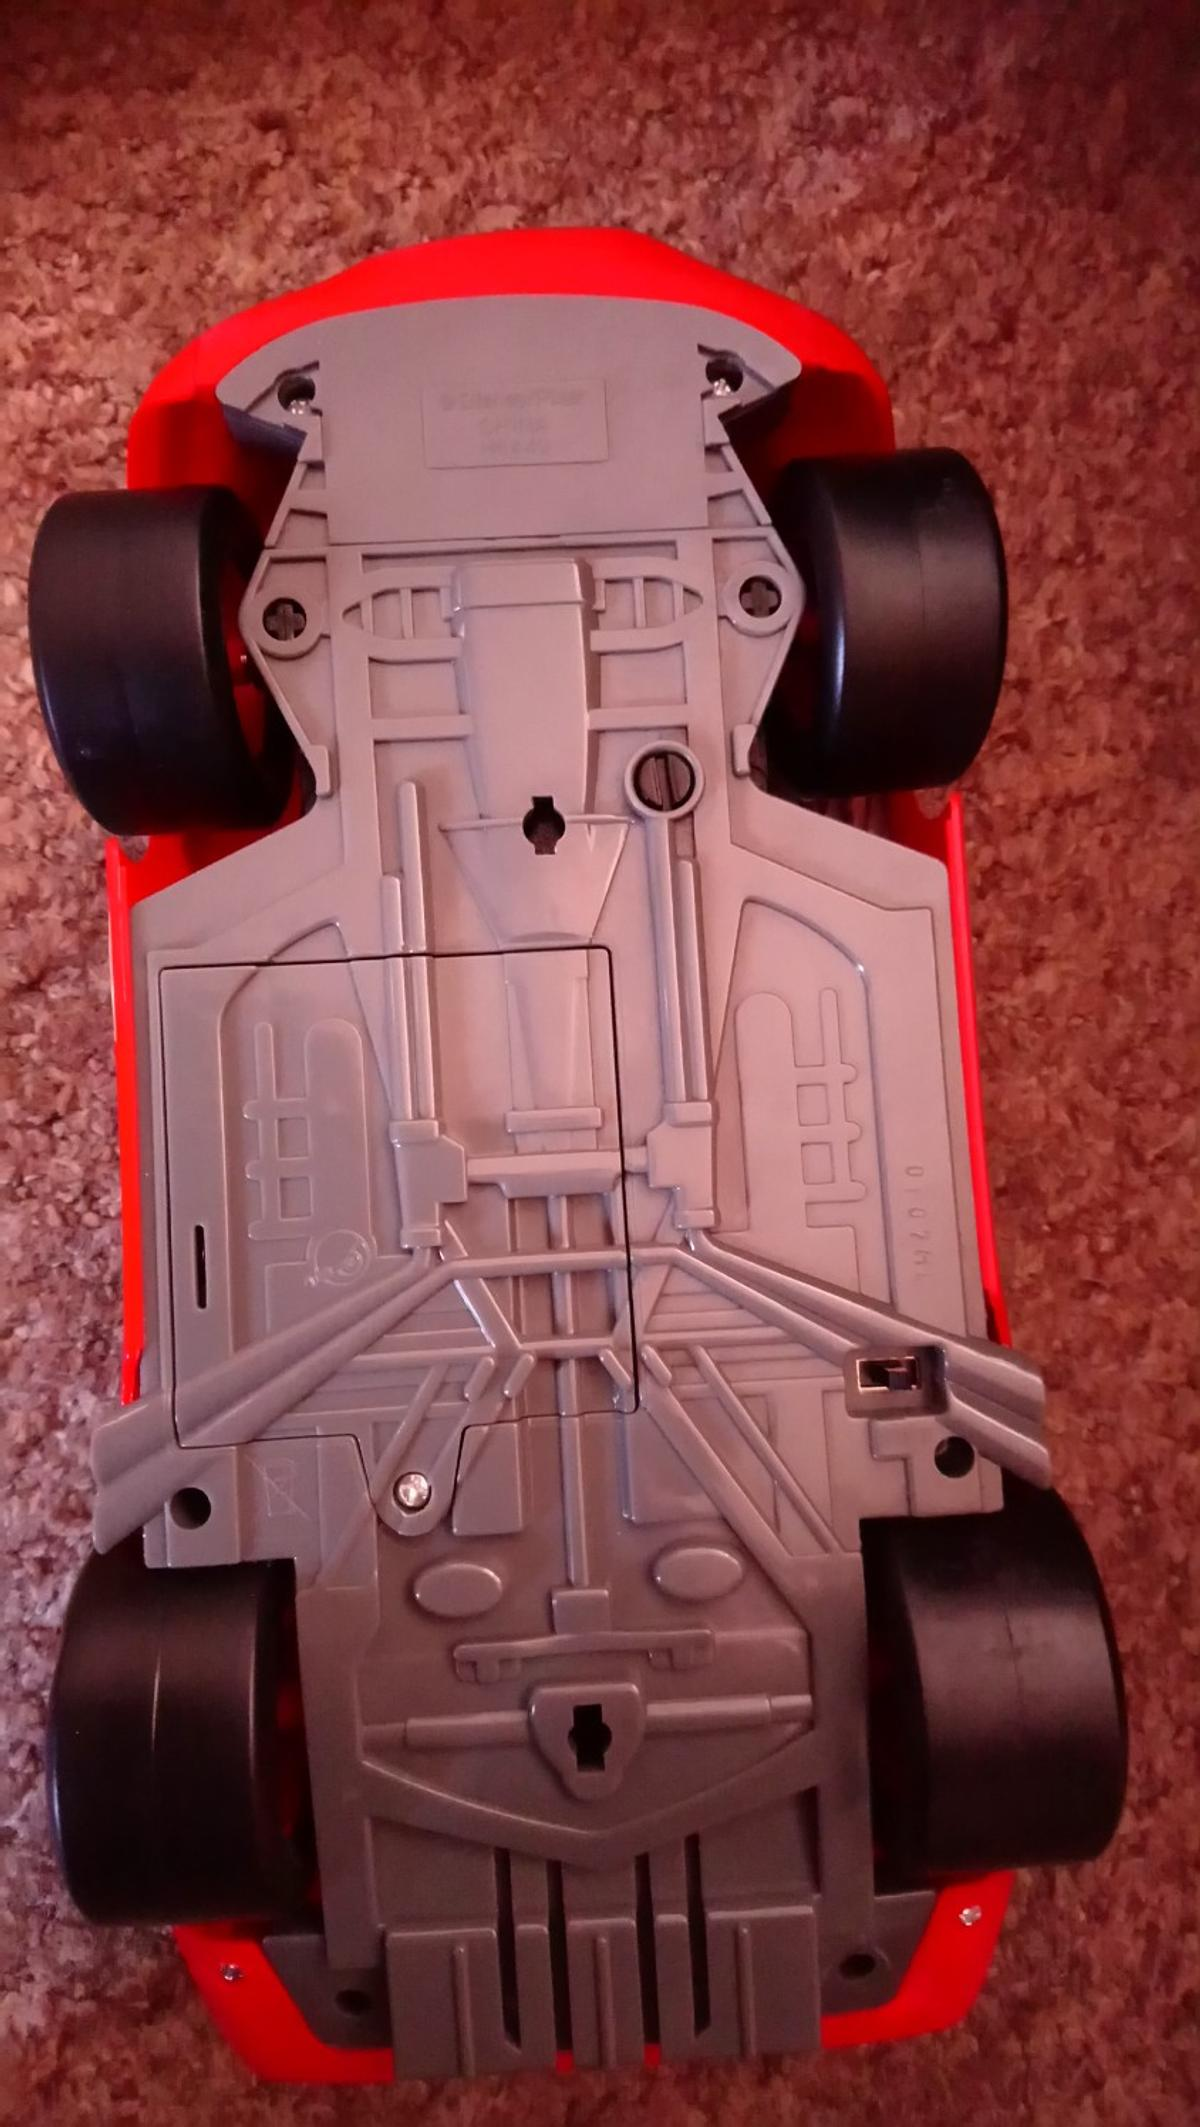 Disney cars lightning mcqueen button controlled, moving, talking car, buttons control the car and it drives and talks, in excellent clean working condition, postage available £3.00 p&p hermes tracked.